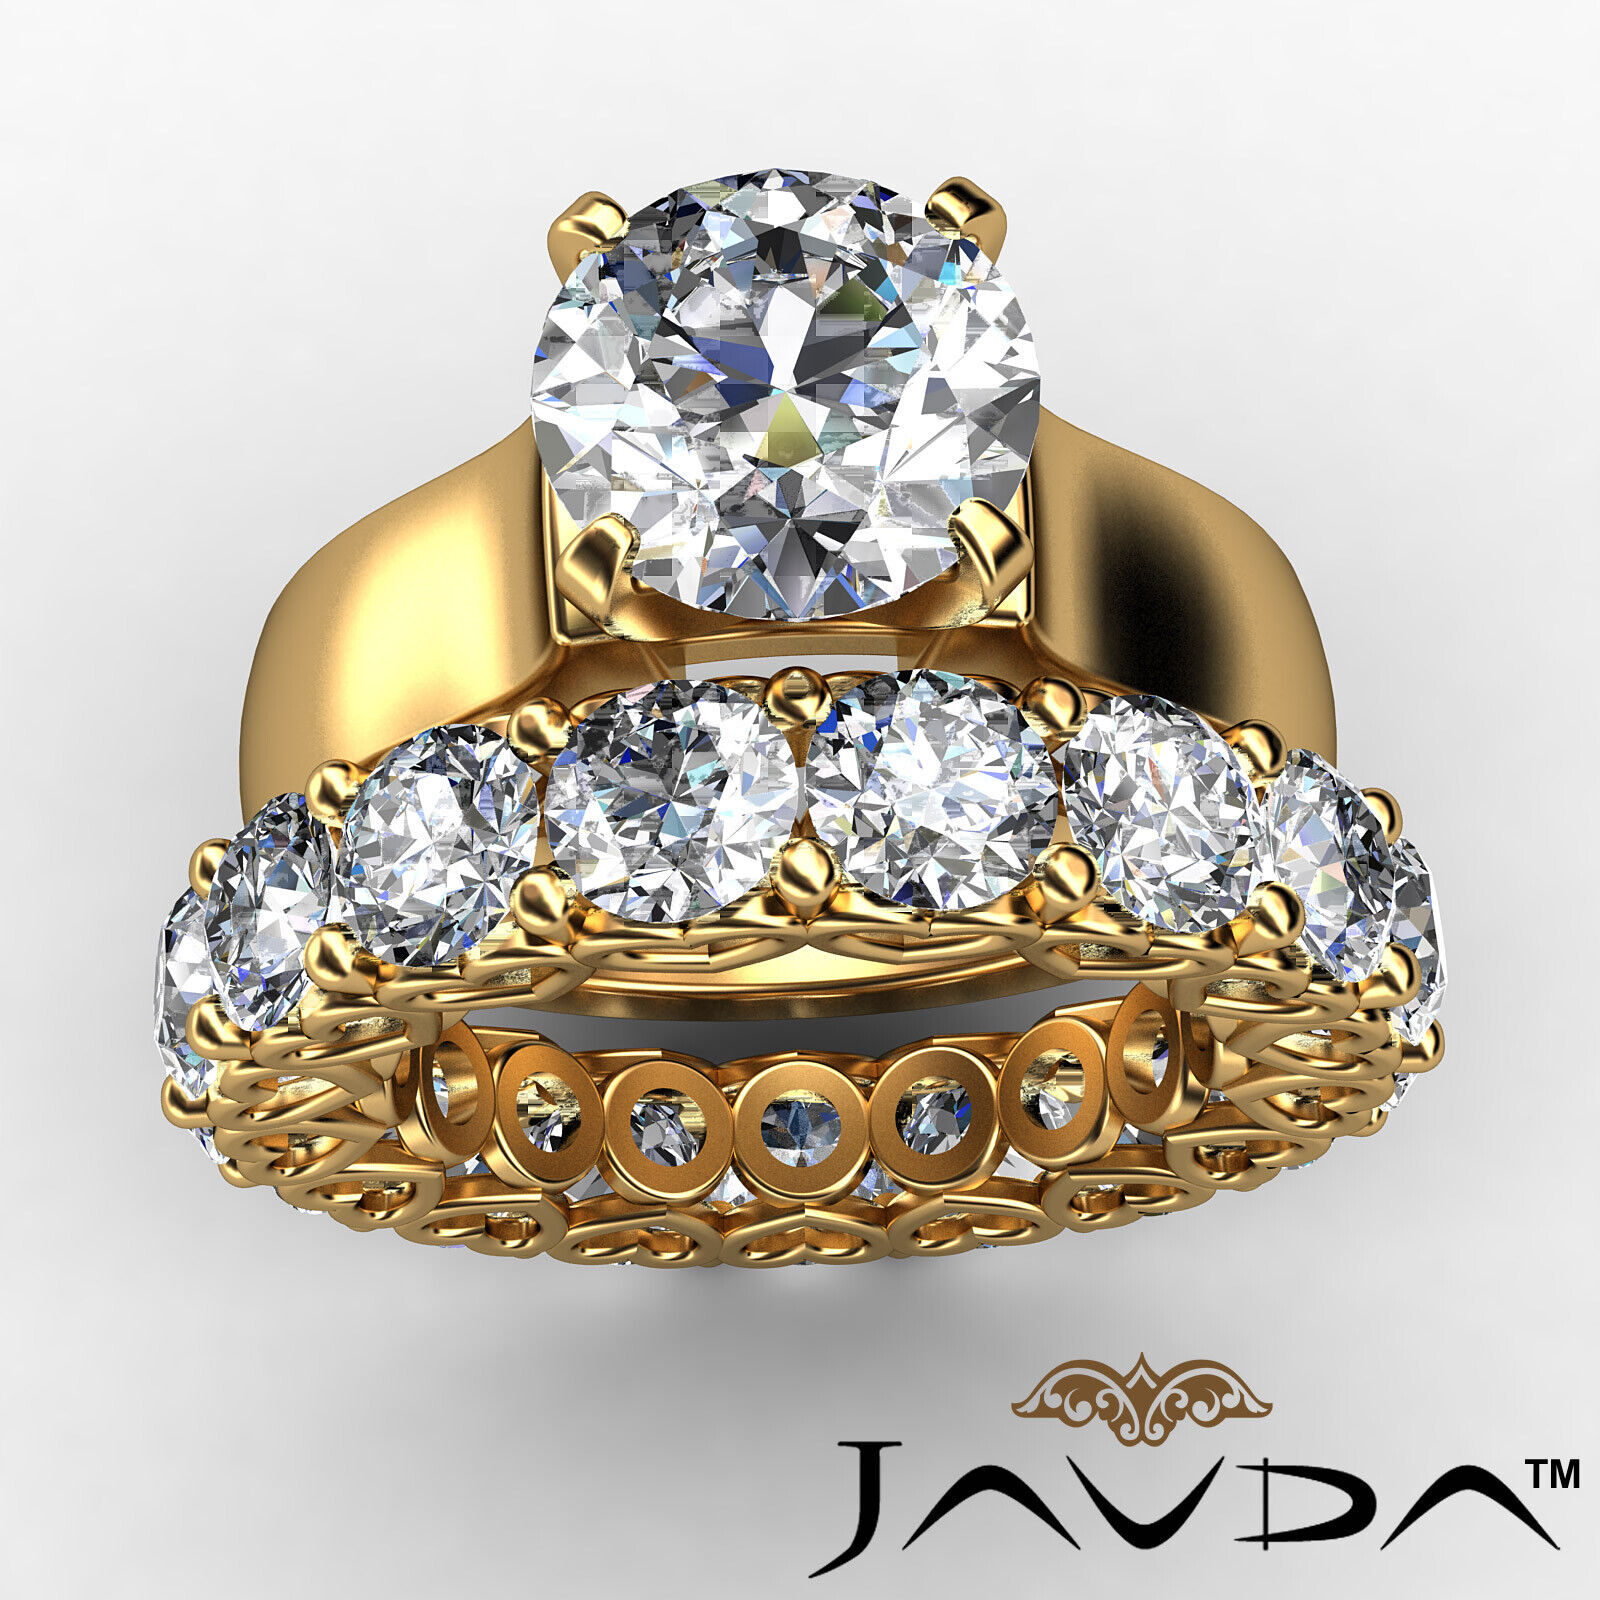 7.05Ct. Diamond Engagement Wedding Bridal Set Ring 14k Yellow Gold GIA Certified 2